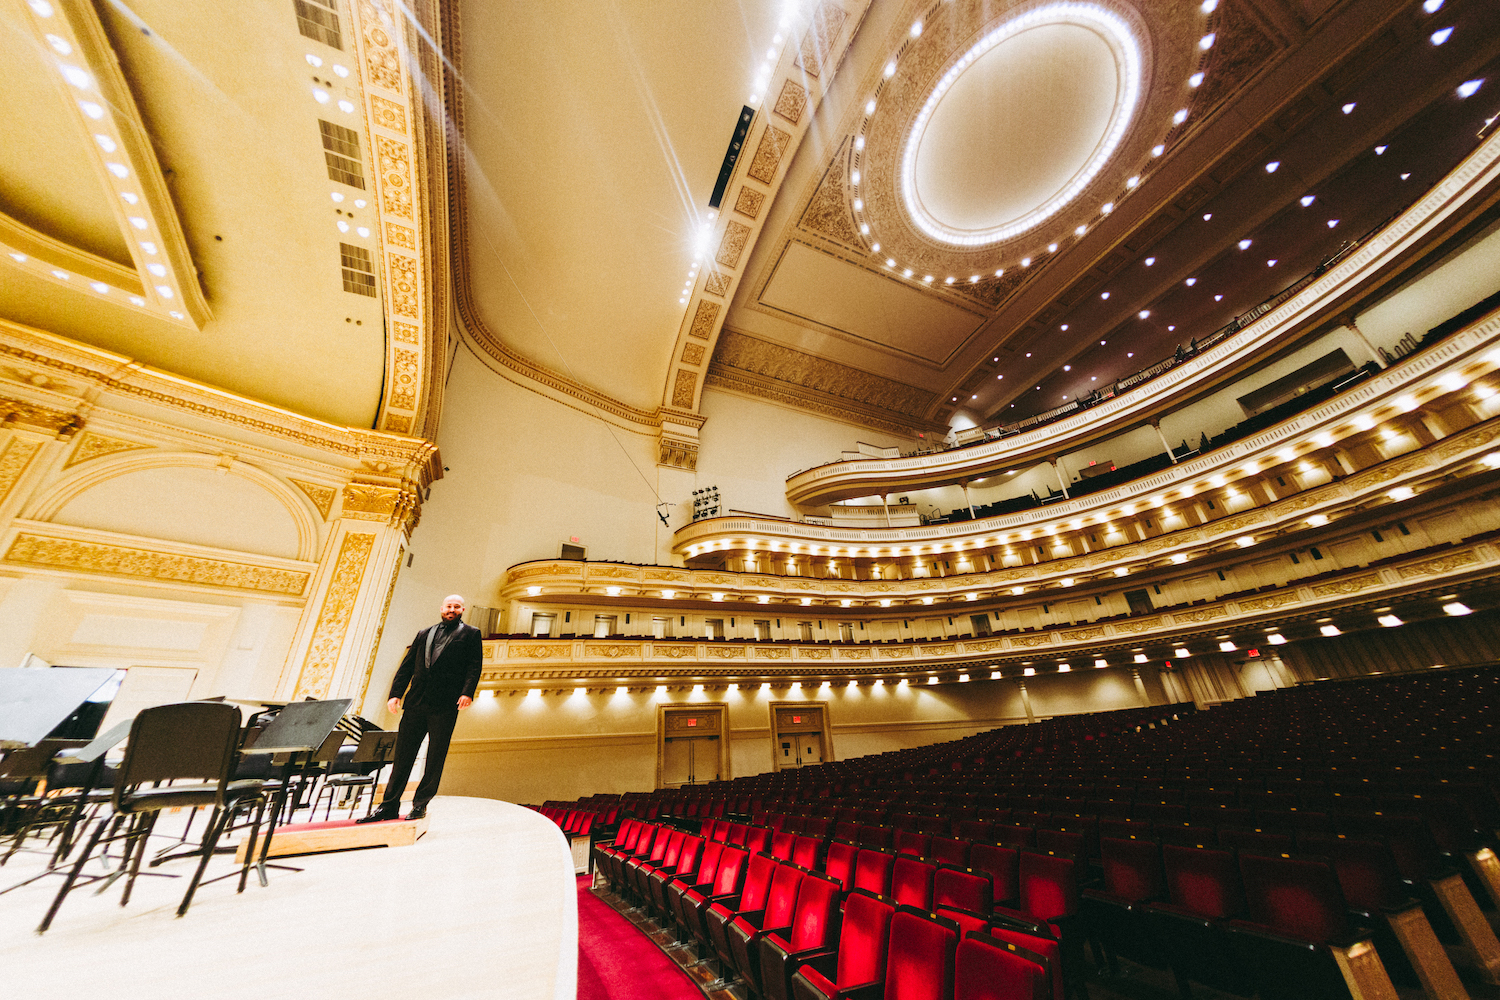 WE.LSU.CARNEGIE.GioOnstage – The La Sierra University Wind Ensemble Director Giovanni Santos pauses for a photo on the Isaac Stern Auditorium/Ronald O. Perelman Stage at Carnegie Hall.